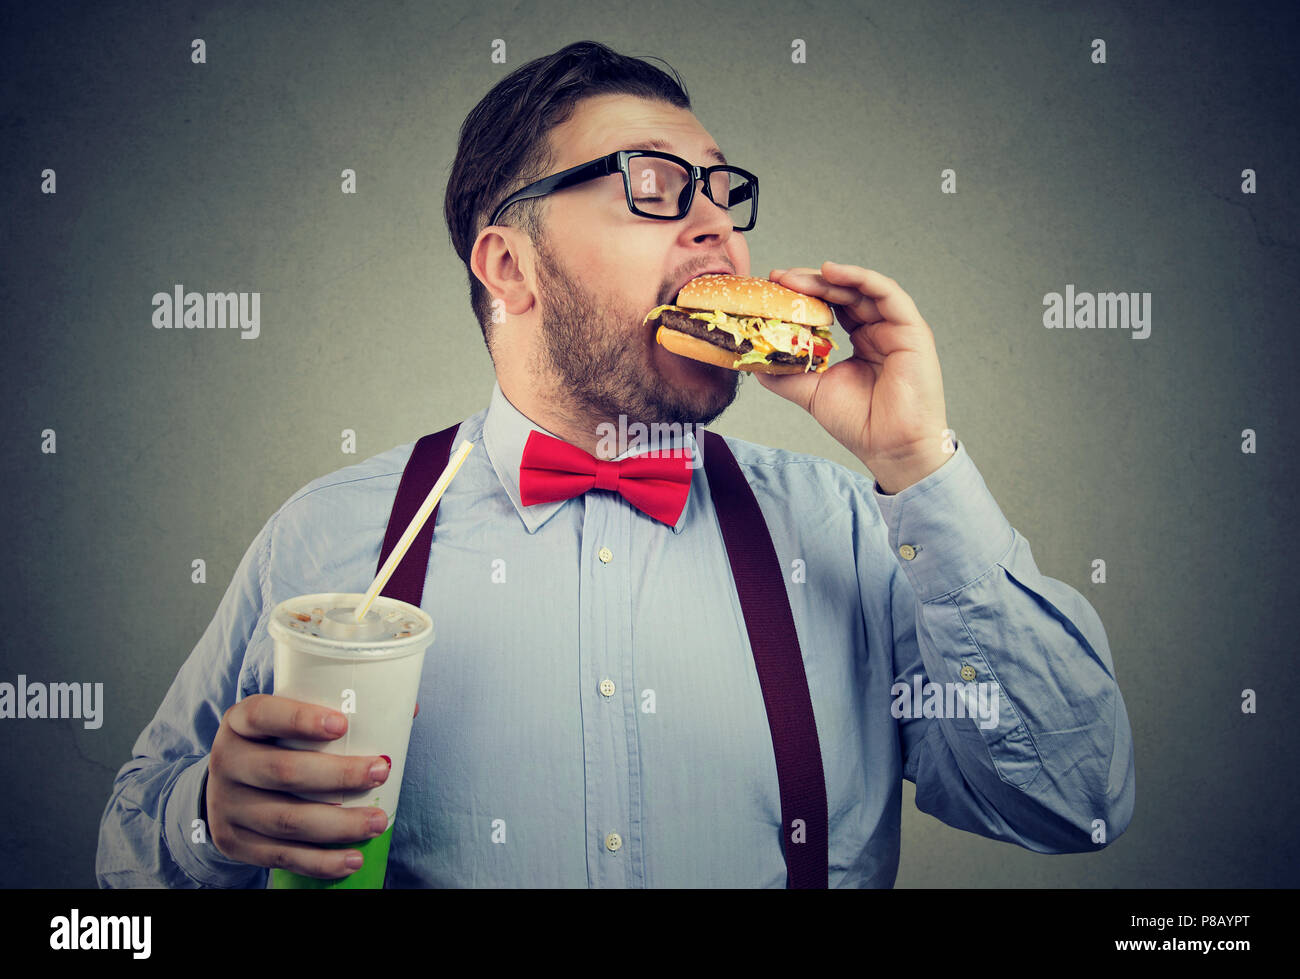 Overweight business man eating with appetite a burger holding a big can of soda drink - Stock Image